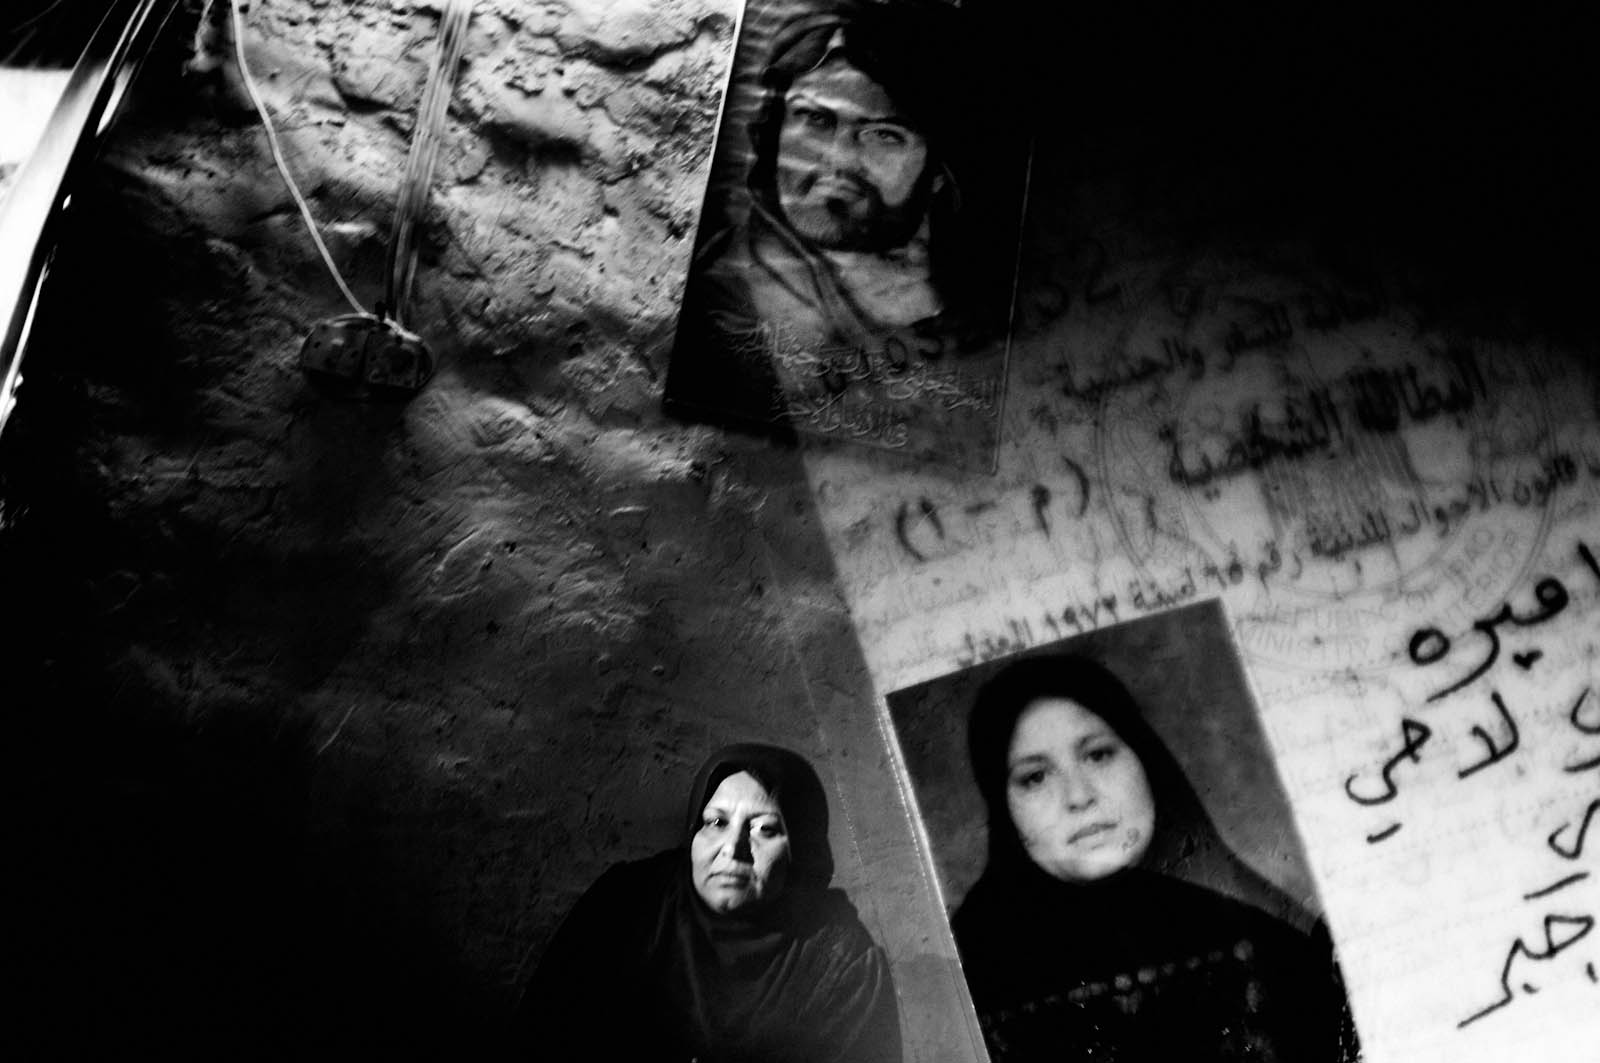 In this unpublished double exposure photo, a Shiite woman sits for a portrait in Baghdad, Iraq on Feb. 6, 2007. Al-Kaibee's house was destroyed by a car bomb in Dec. 2006.